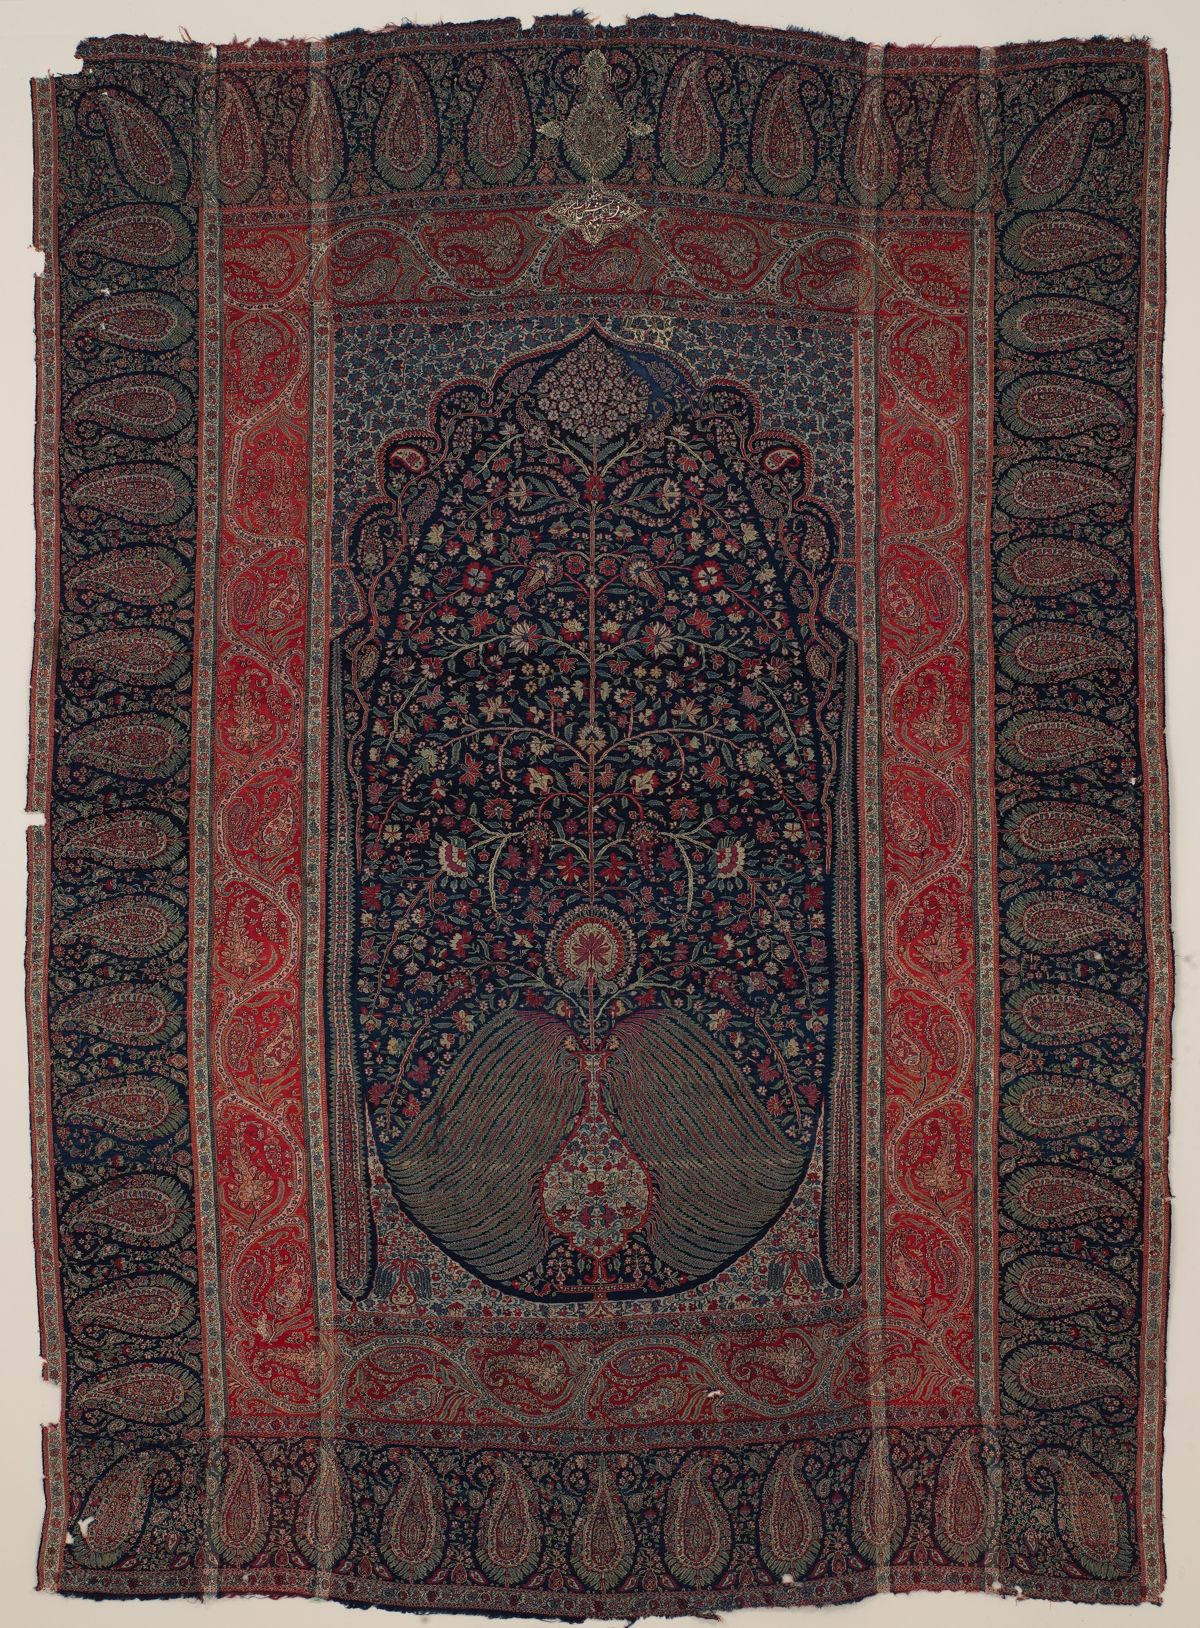 Kashmir shawl, attributed to Mohammed Azim Khan, the Pashtun governor of Kashmir between c. 1813 and 1819 (courtesy Metropolitan Museum of Art, New York, MMA x.103.4).